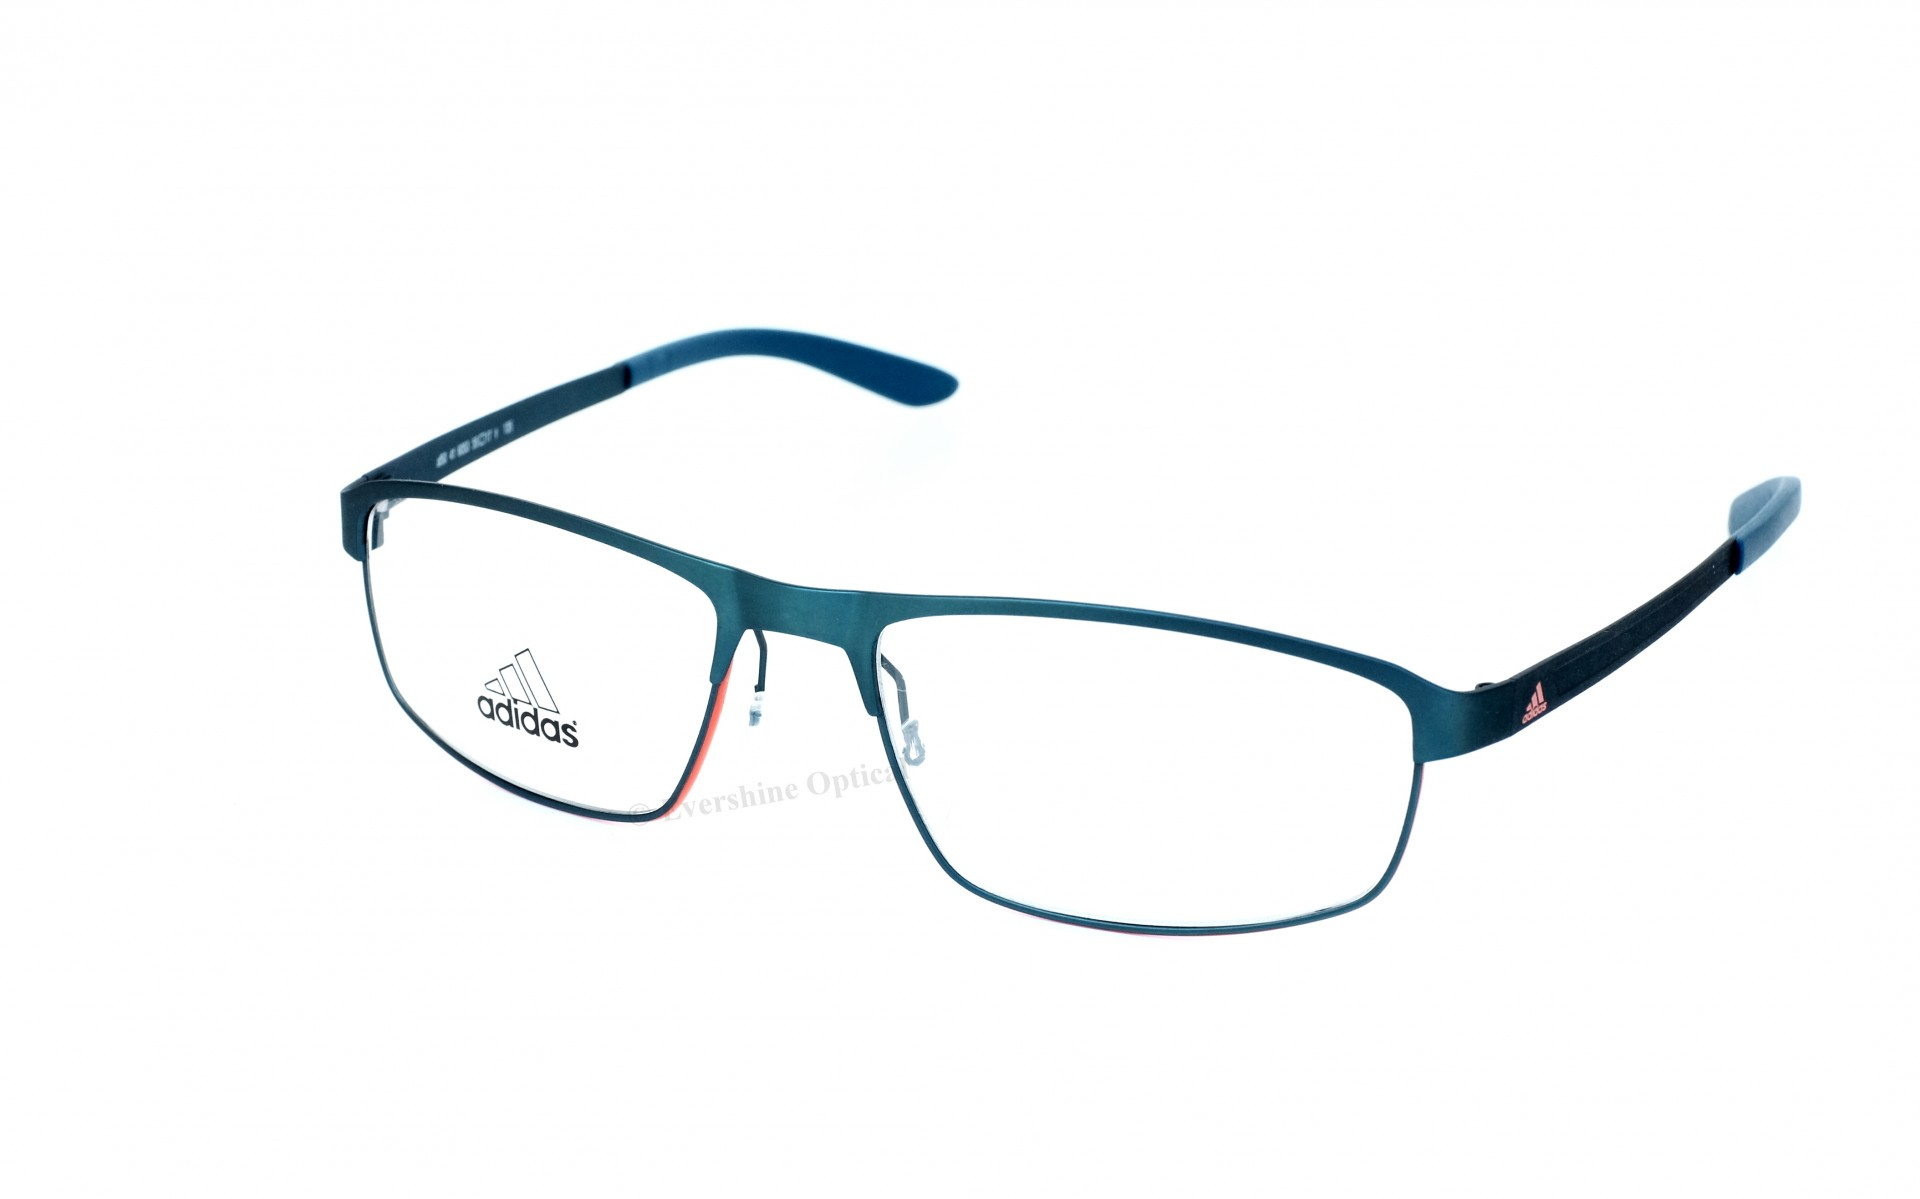 Adidas Eyeglass Frames Philippines : New Eyewear from Adidas - Evershine Optical